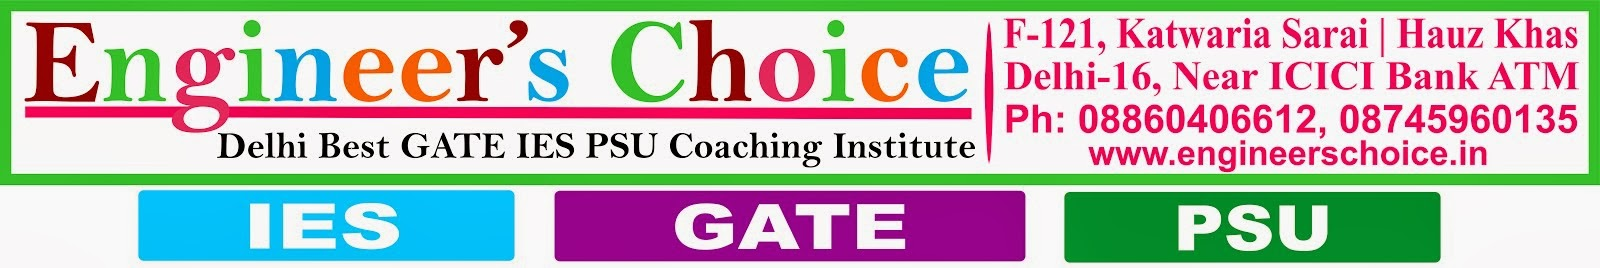 GATE Coaching GATE Coaching Delhi GATE Coaching institute in Noida Kolkata Lucknow 2013 2014 2015